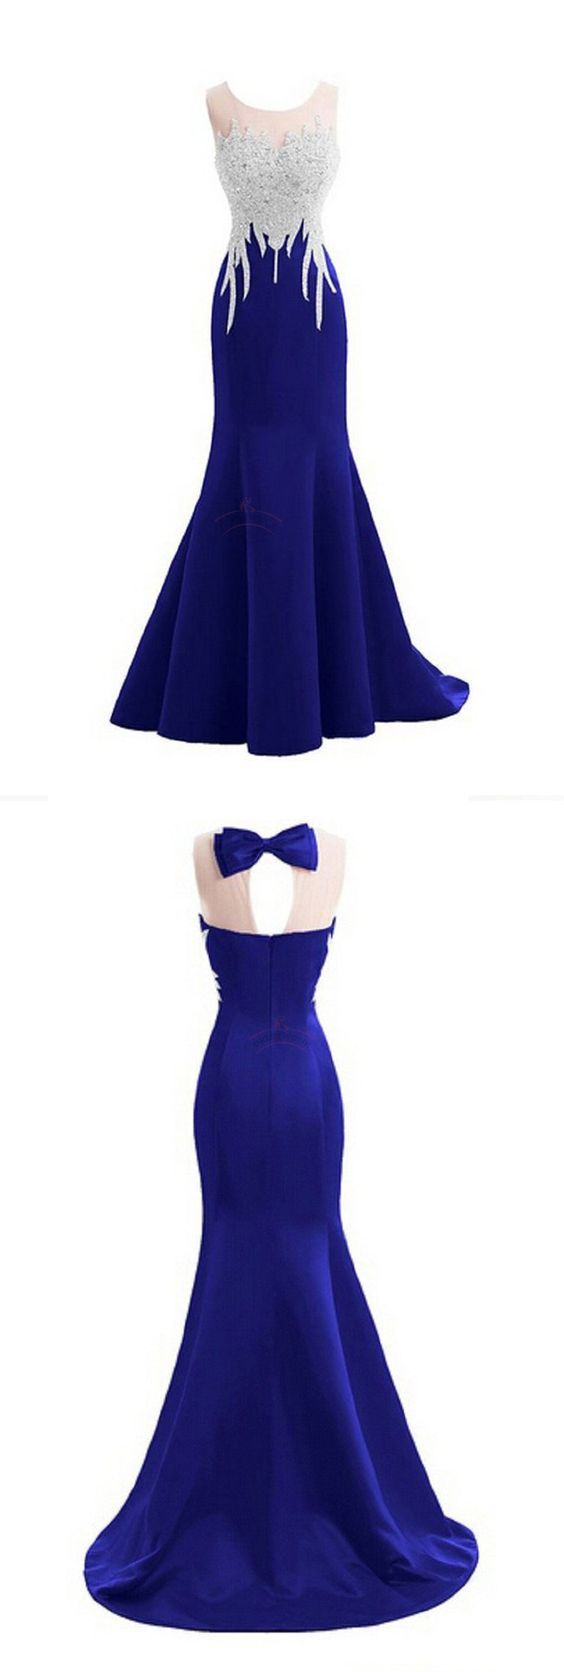 Mermaid Prom Gown,Royal Blue Prom Dresses,Royal Blue Evening Gowns,Beaded Party Dresses,Evening Gowns,Formal Dress For Teens